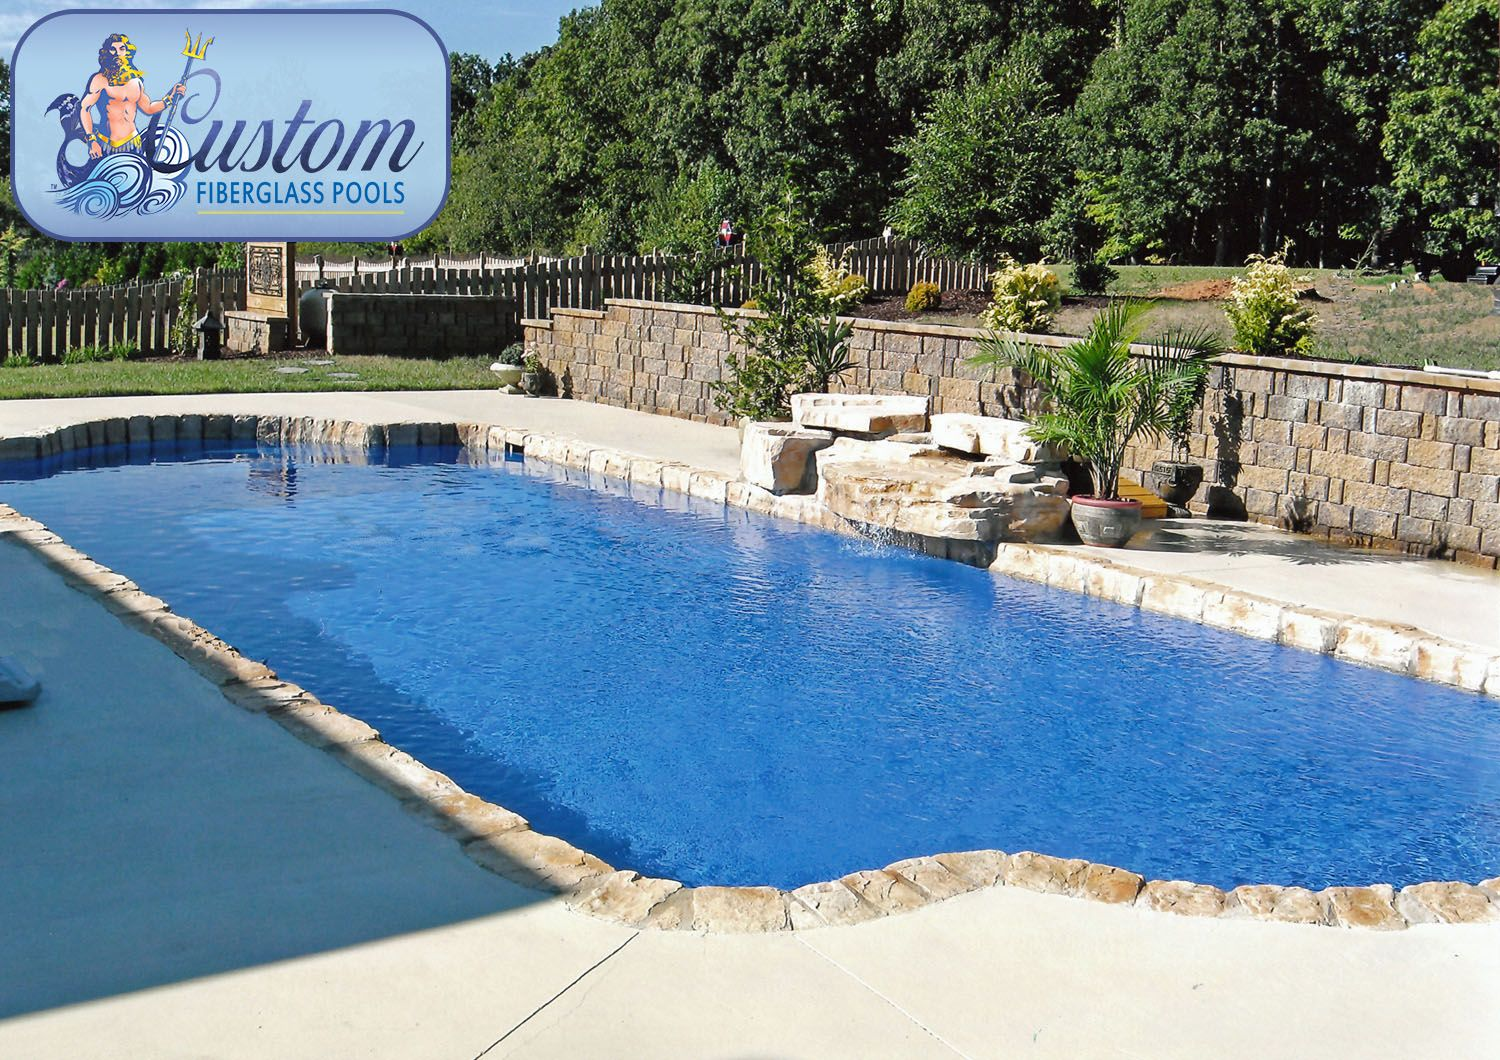 Seminole 12x28 Awesome Pools is located in Apison Tennessee and